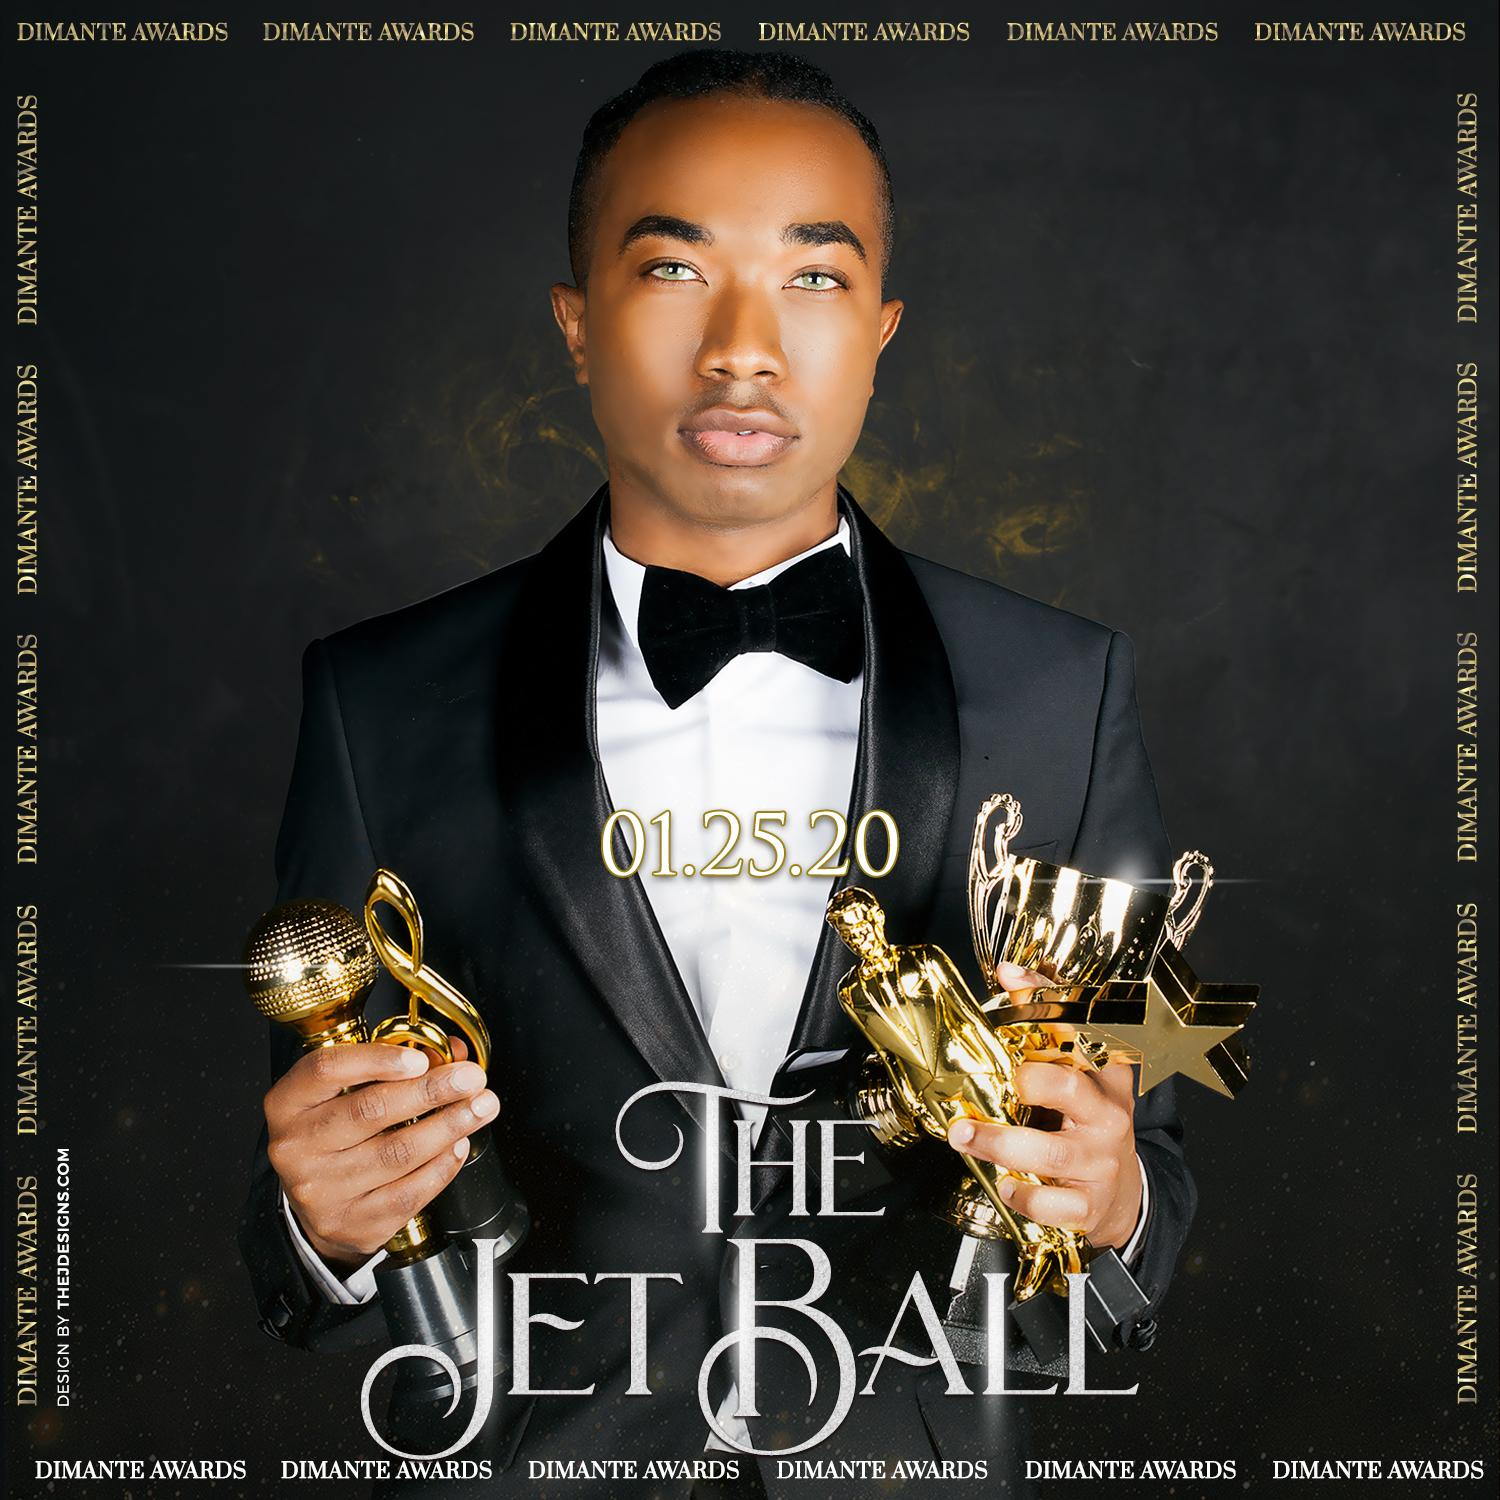 JET BALL III : The Dimante Awards